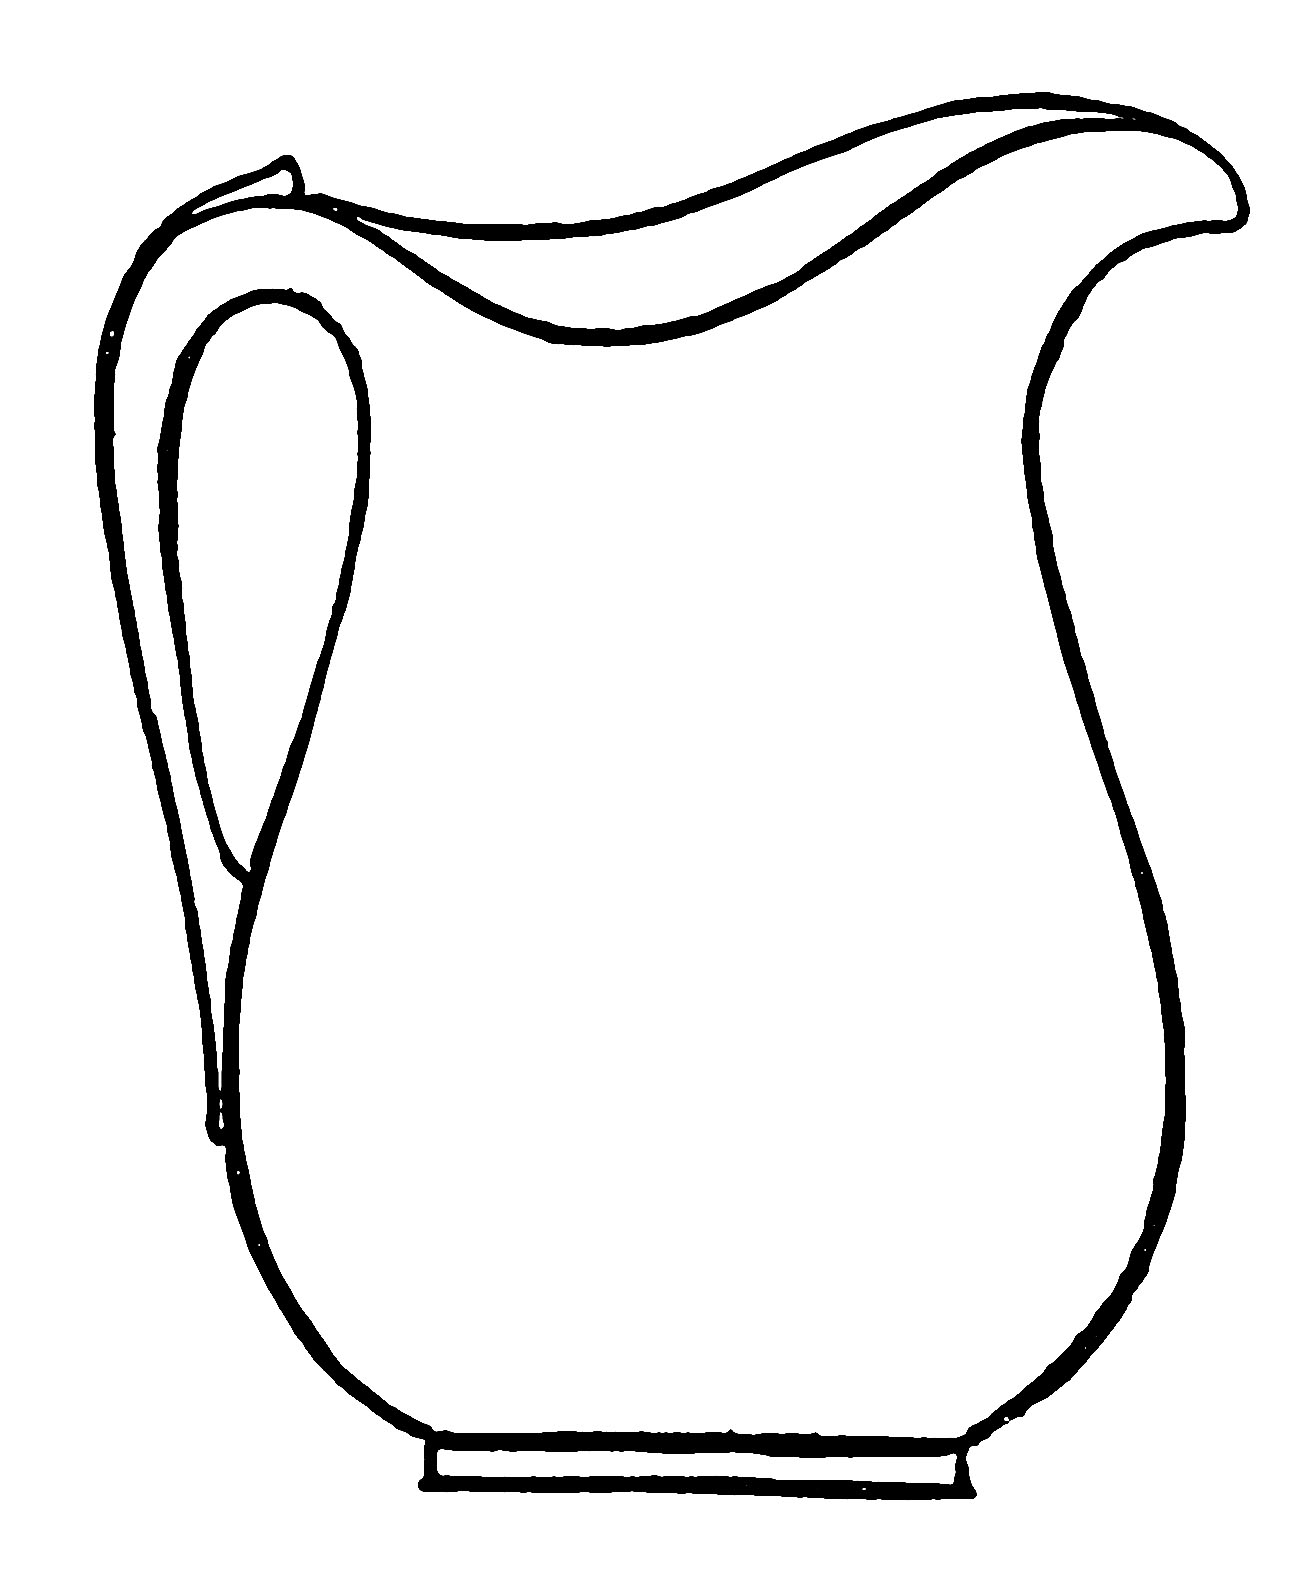 For pages free download. Olaf clipart pitcher